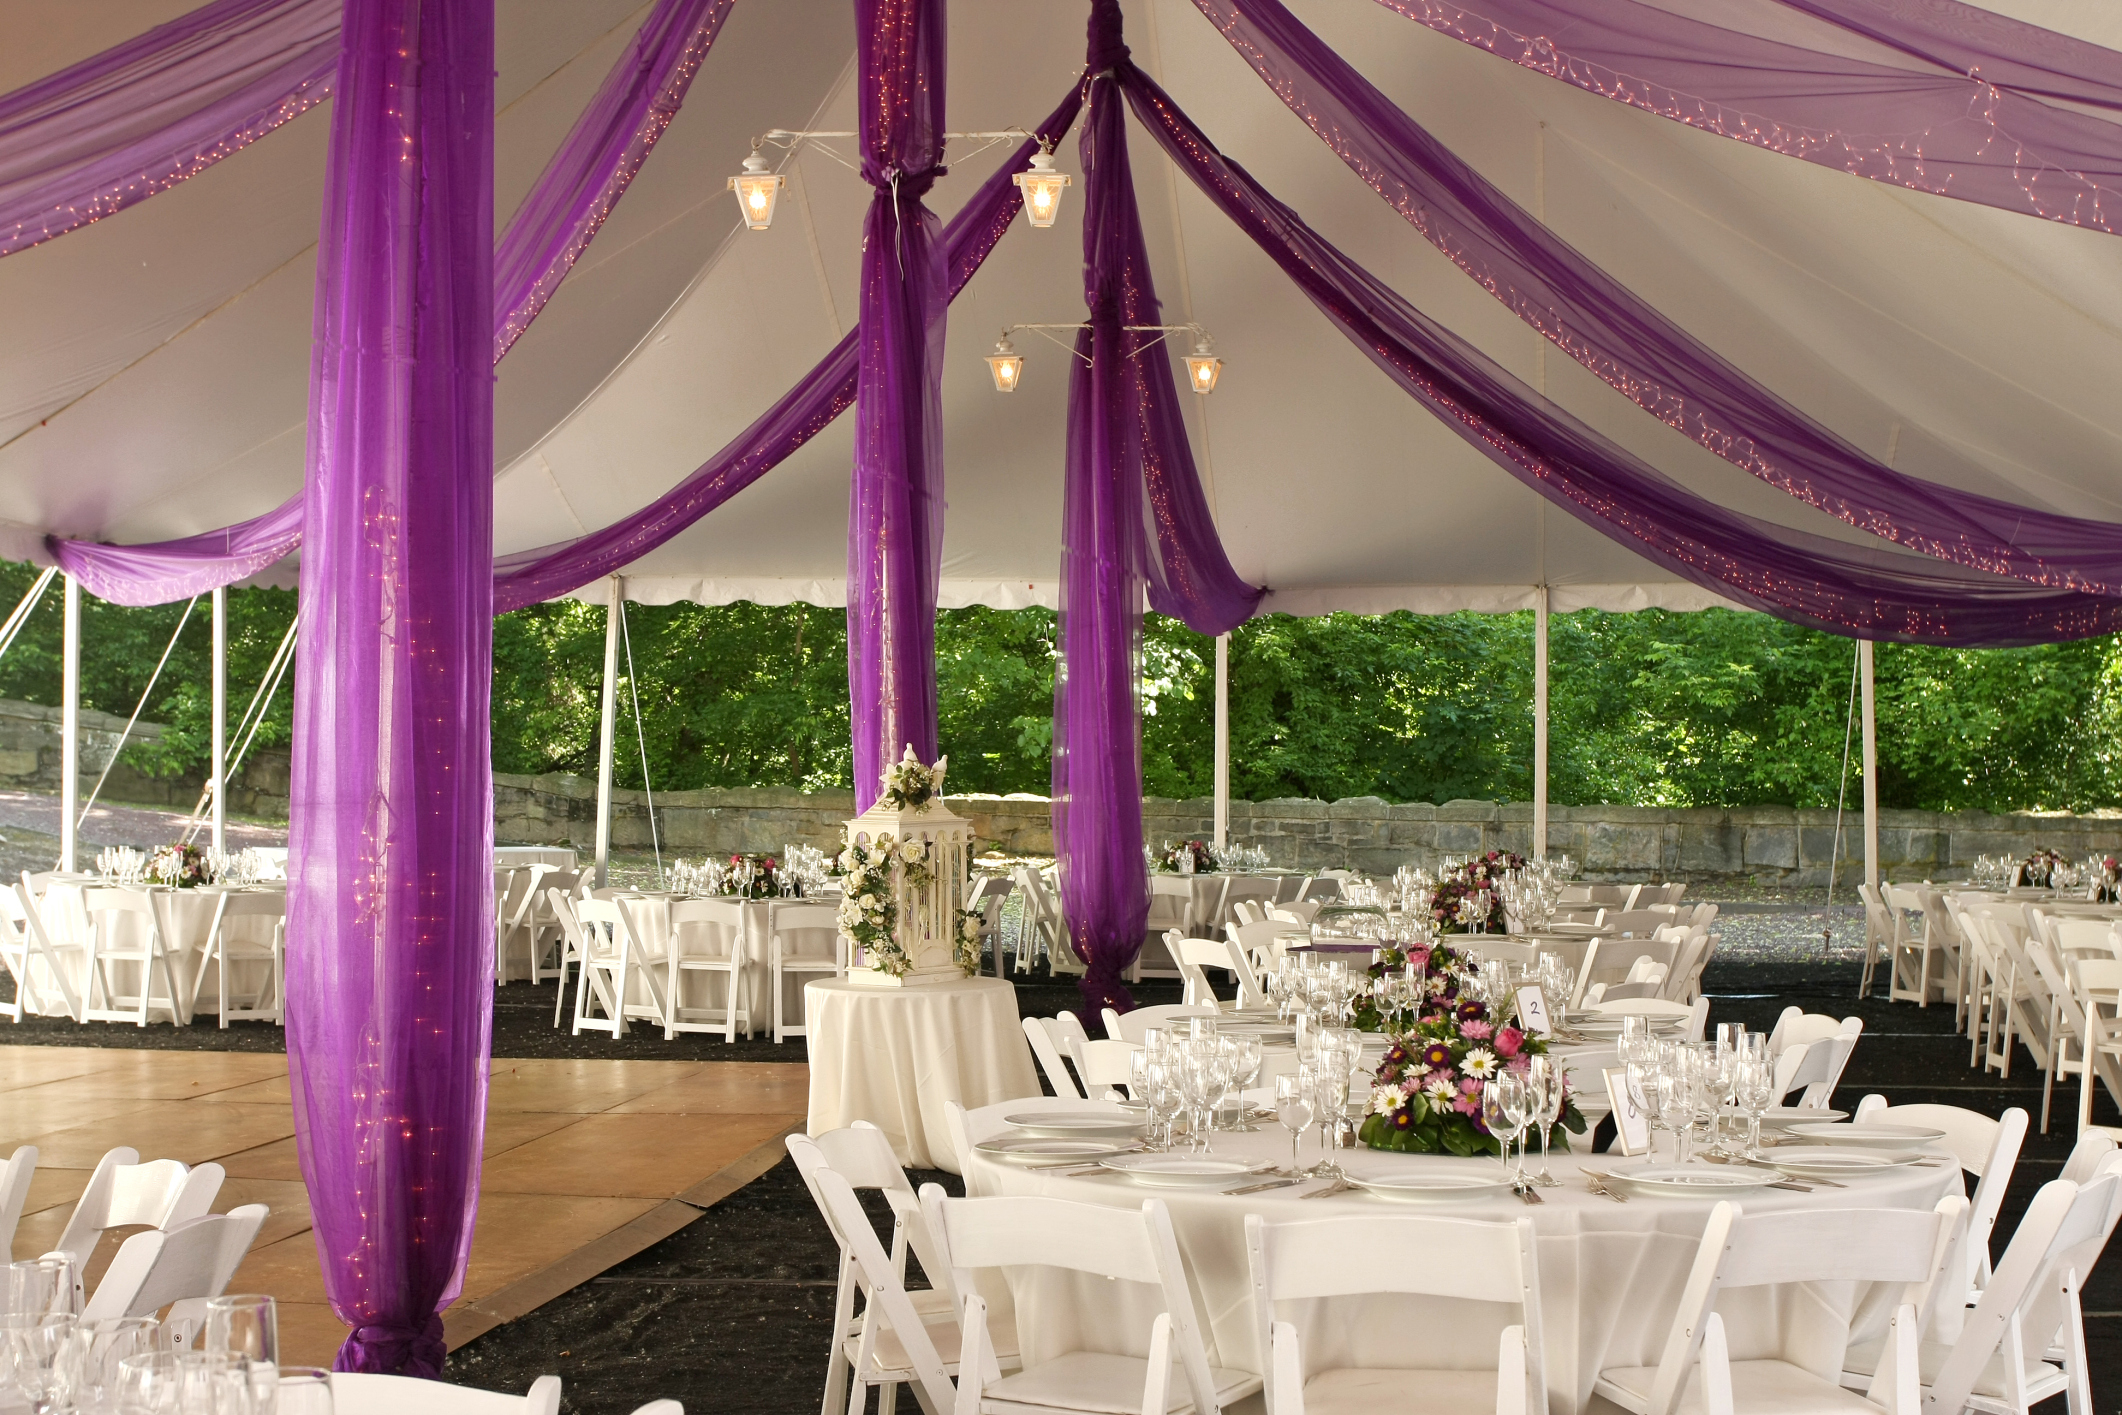 Rainingblossoms Wedding Receptions Tents Decoration: Marquee Decoration